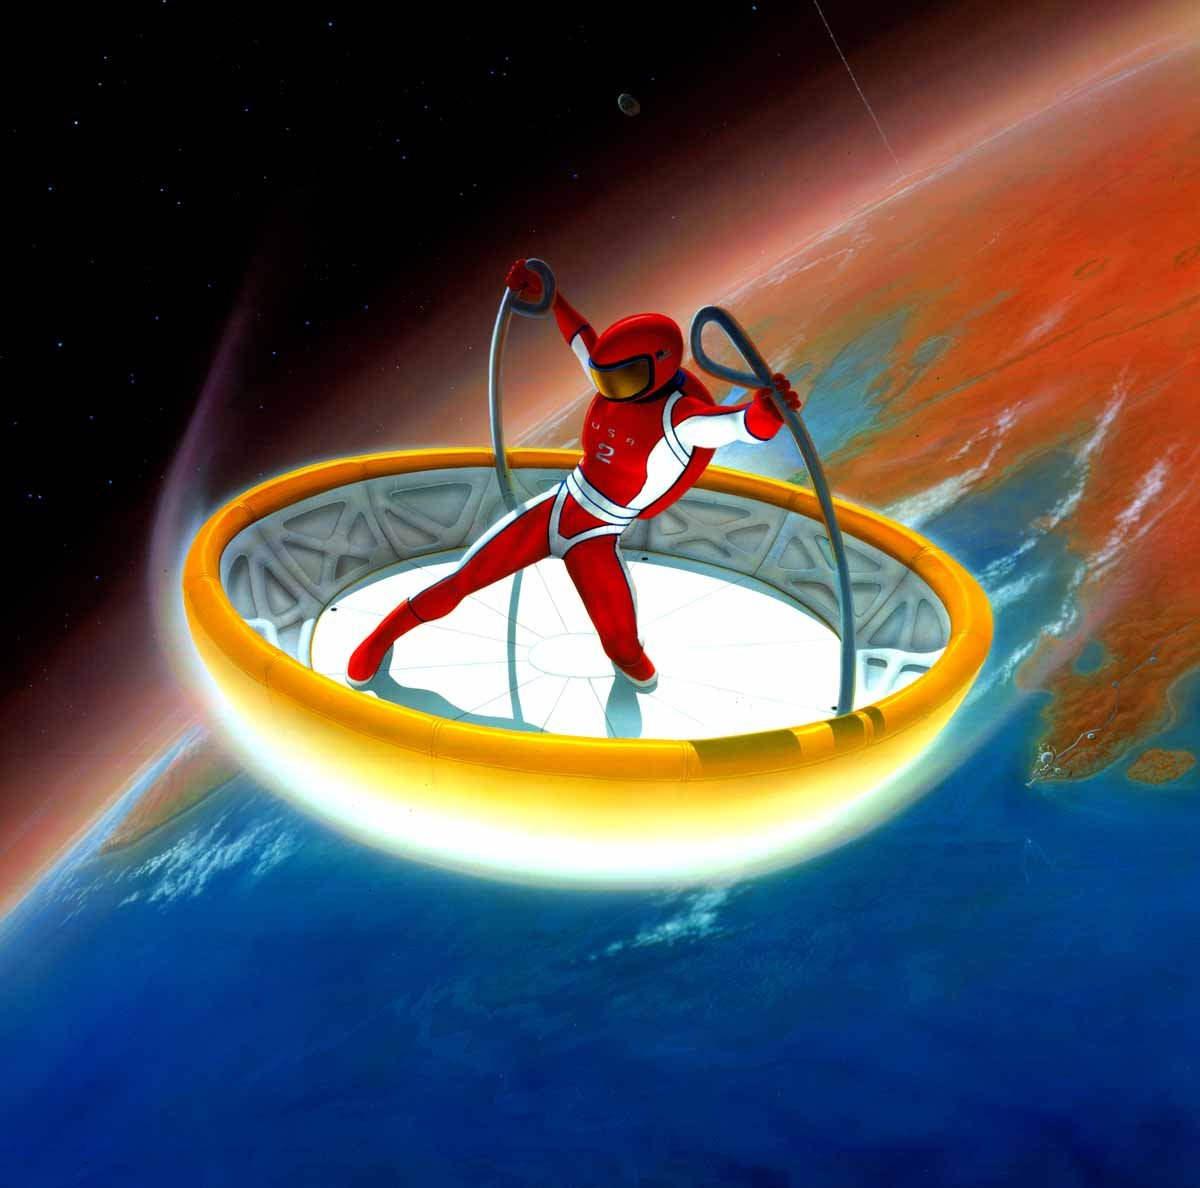 Skysurfing human weight-shift steered entry vehicle